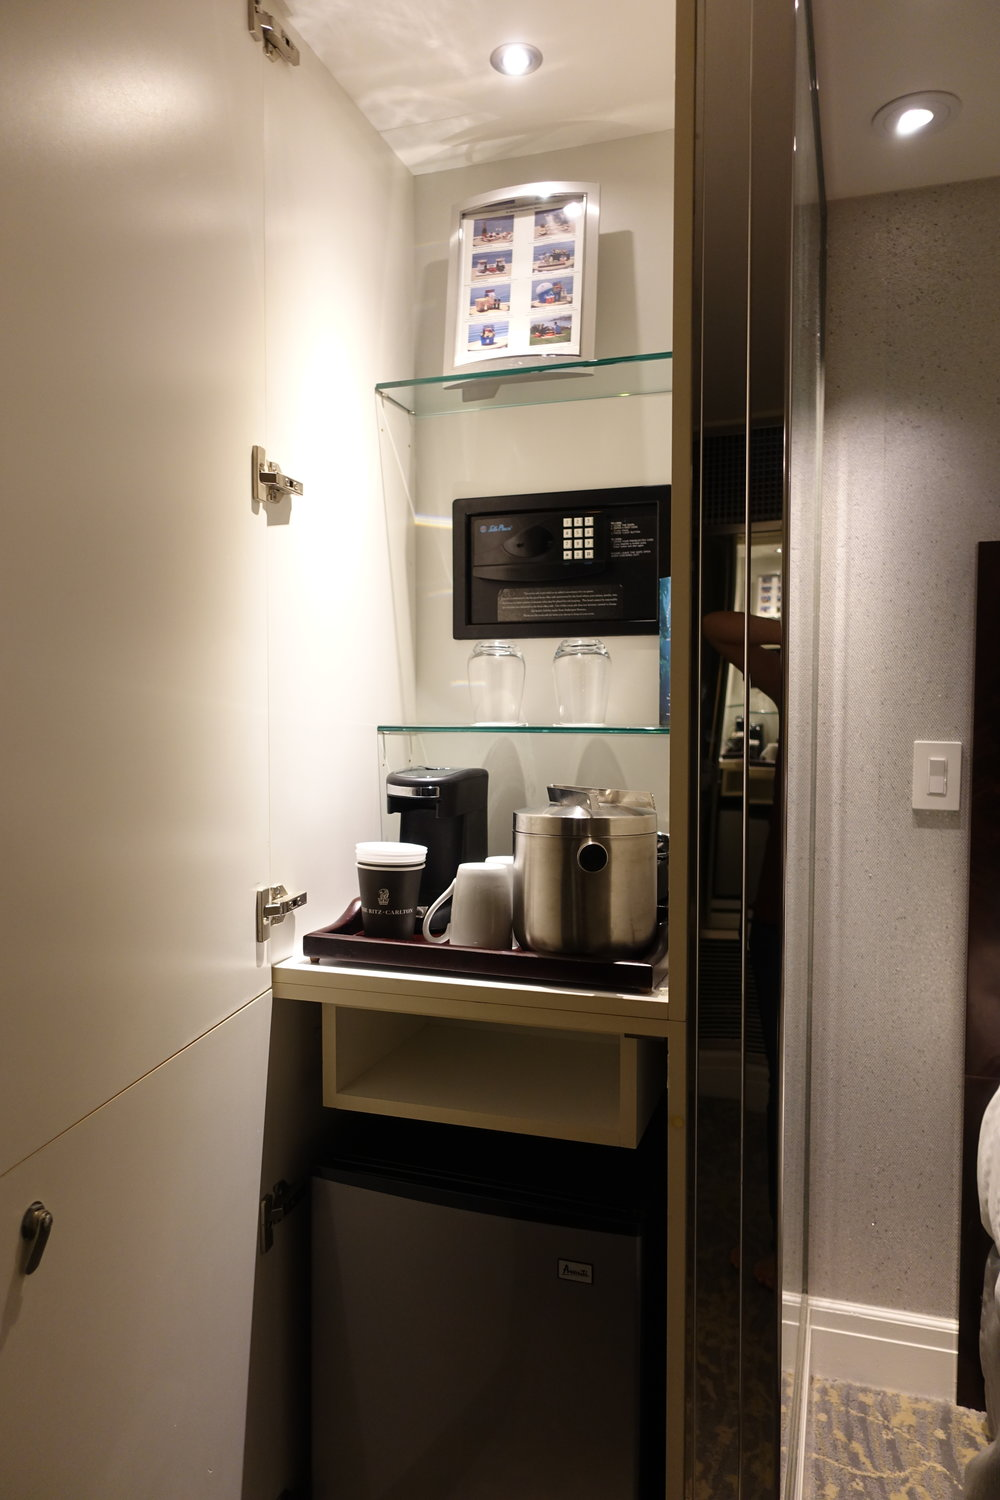 coffee and minifridge